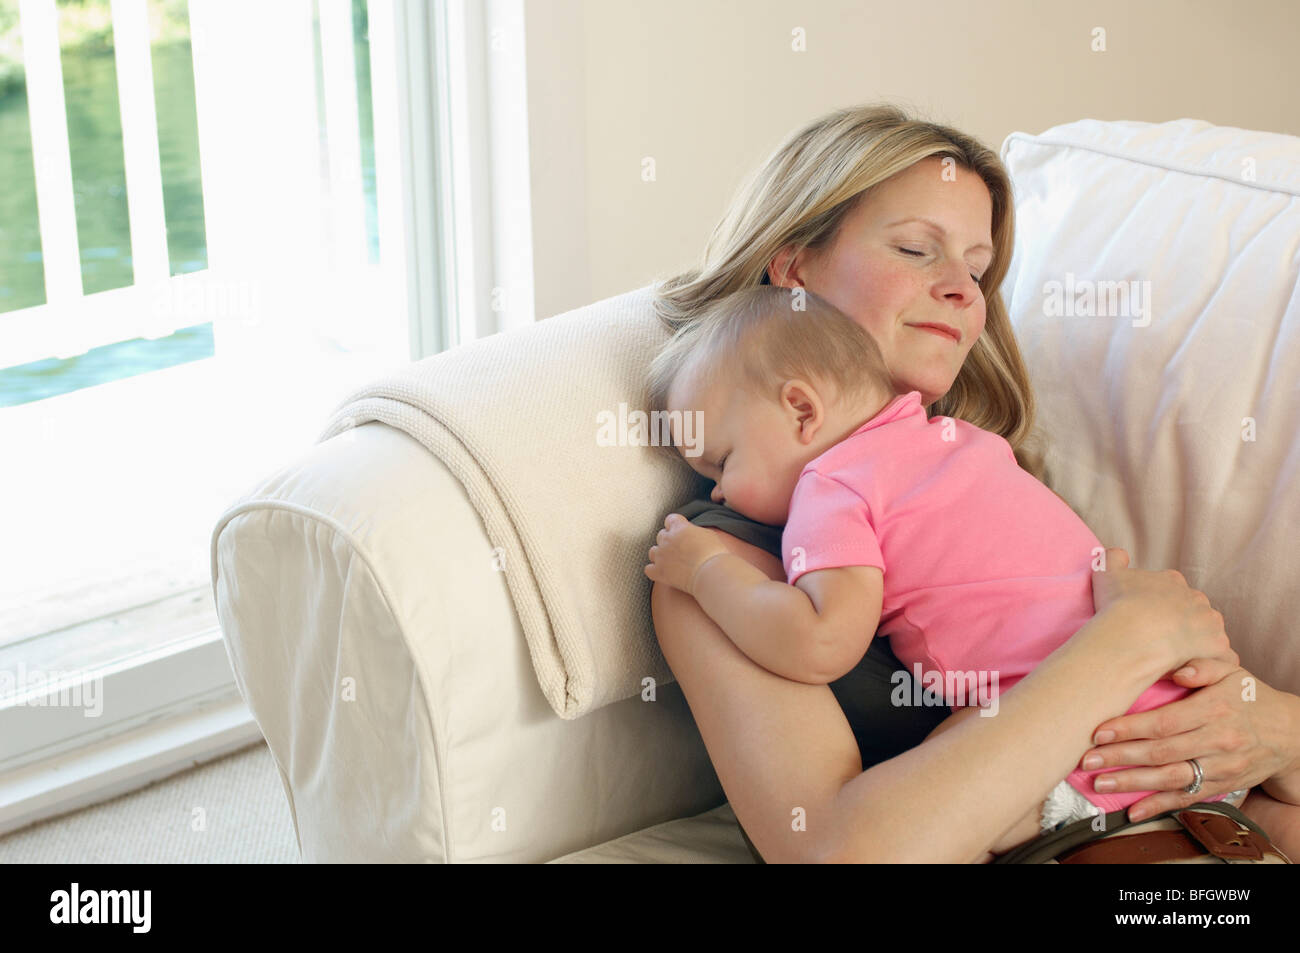 Mother with baby sleeping on sofa - Stock Image